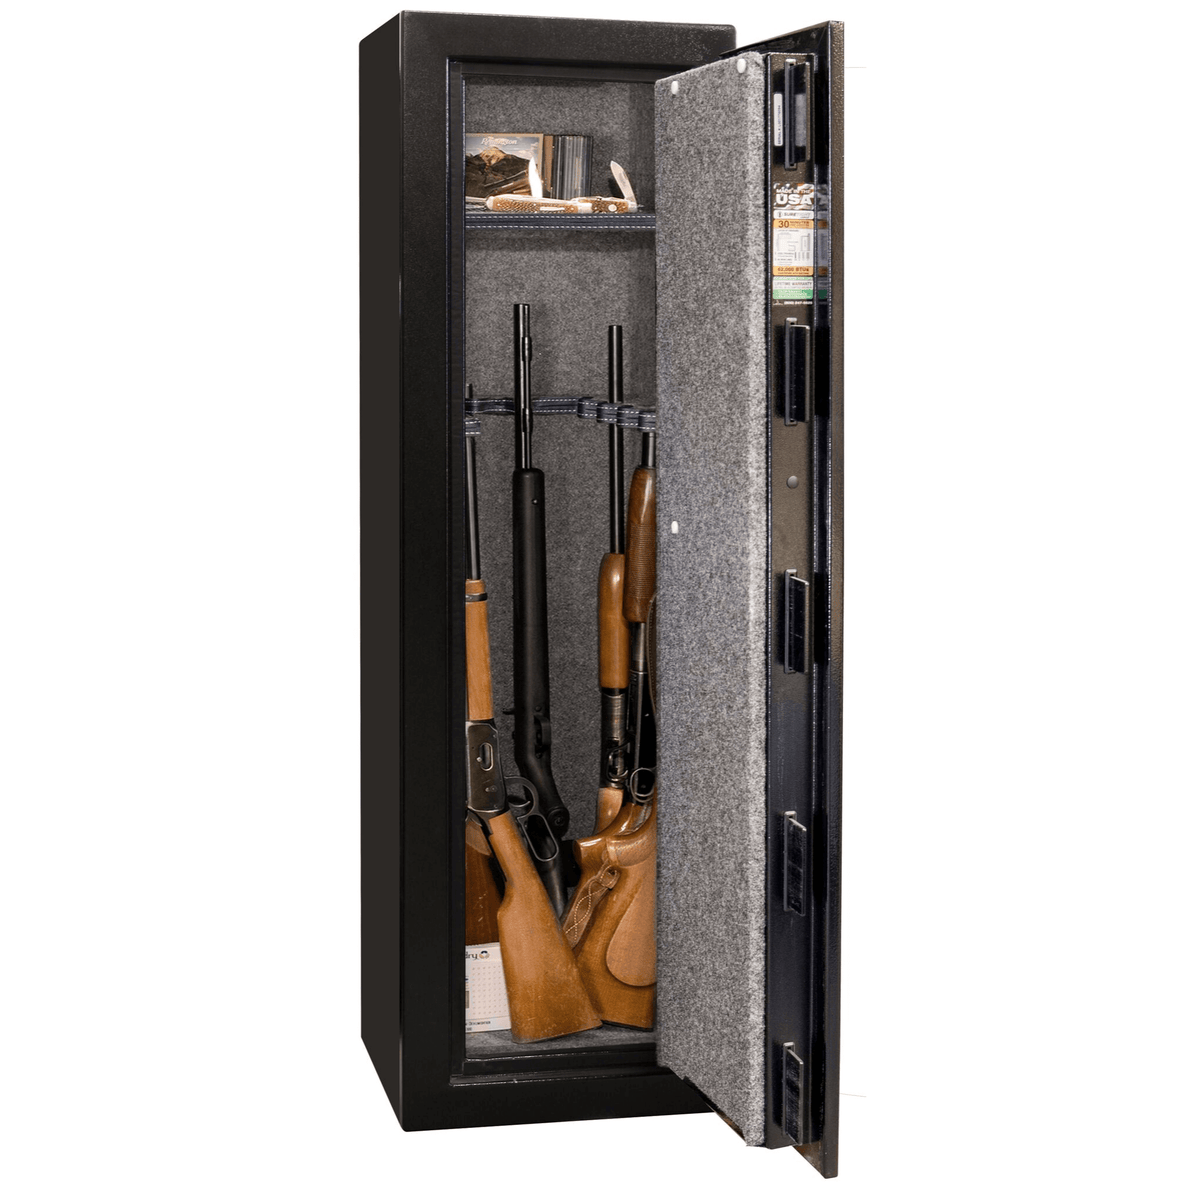 "Centurion | 12 | Level 1 Security | 30 Minute Fire Protection | Black | Black Electronic Lock | 59.5""(H) x 18.25""(W) x 18""(D)"